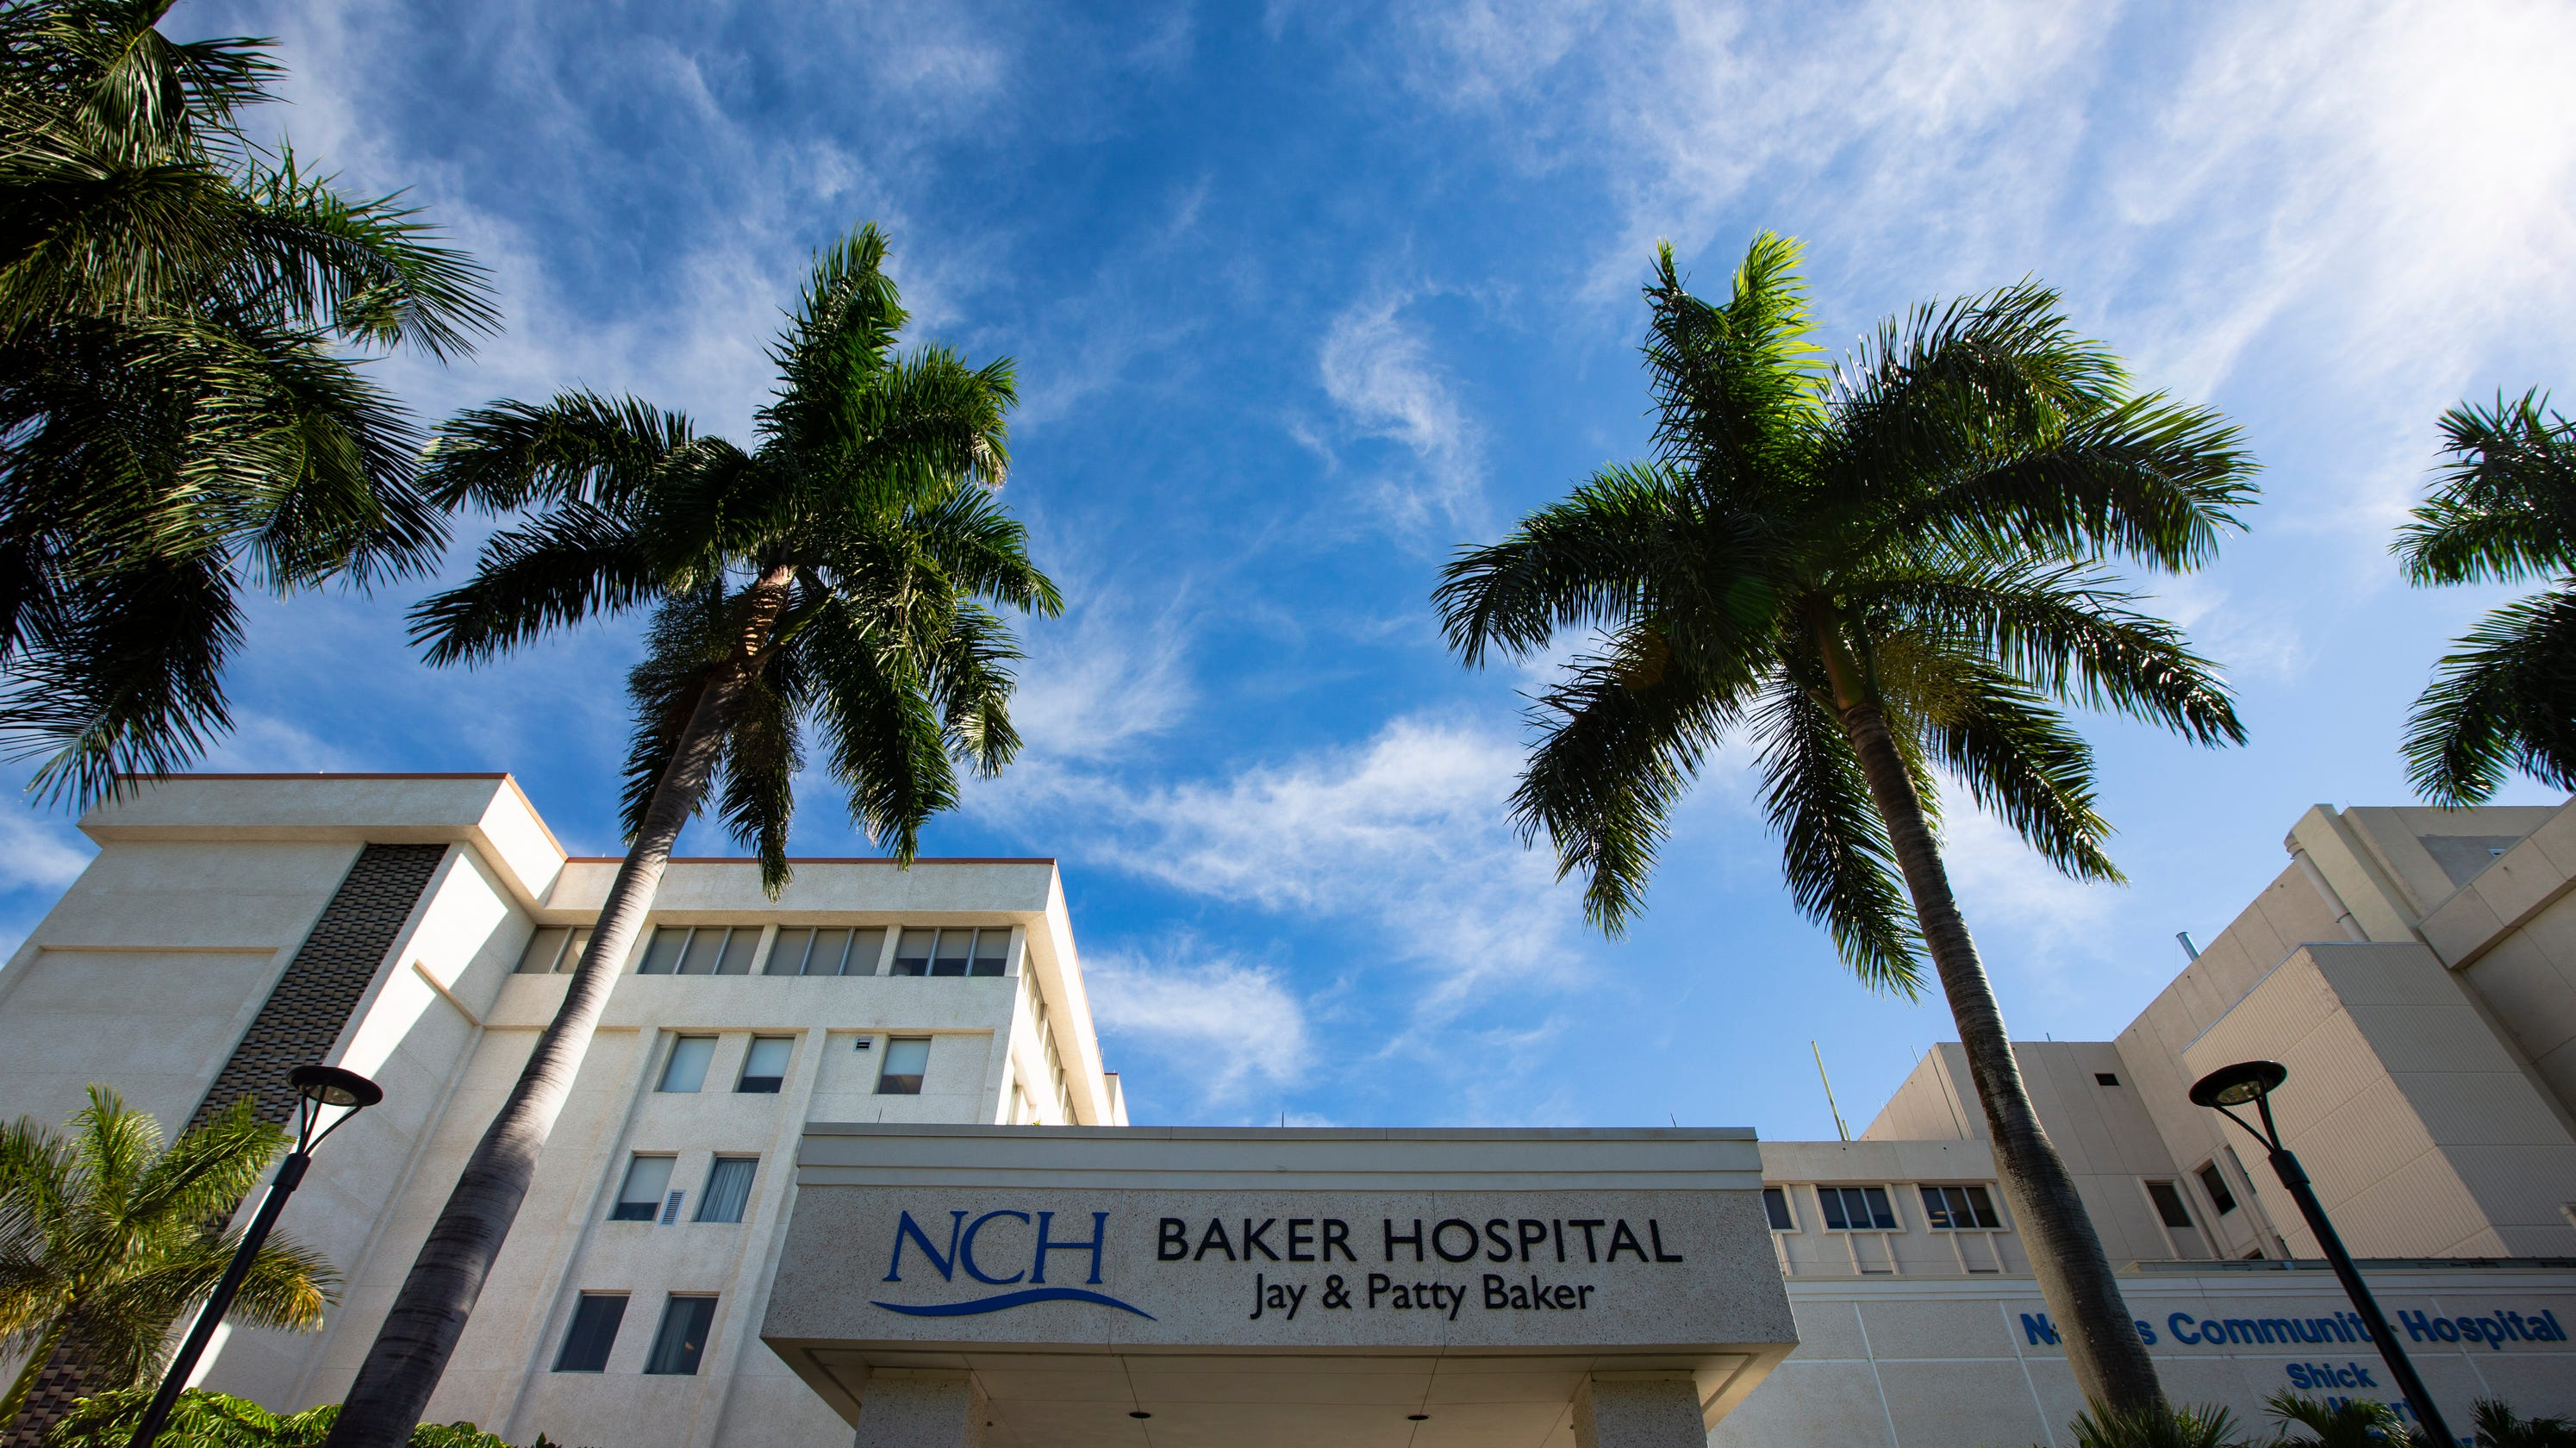 US News & World Report Best Hospitals: Southwest Florida Makes List